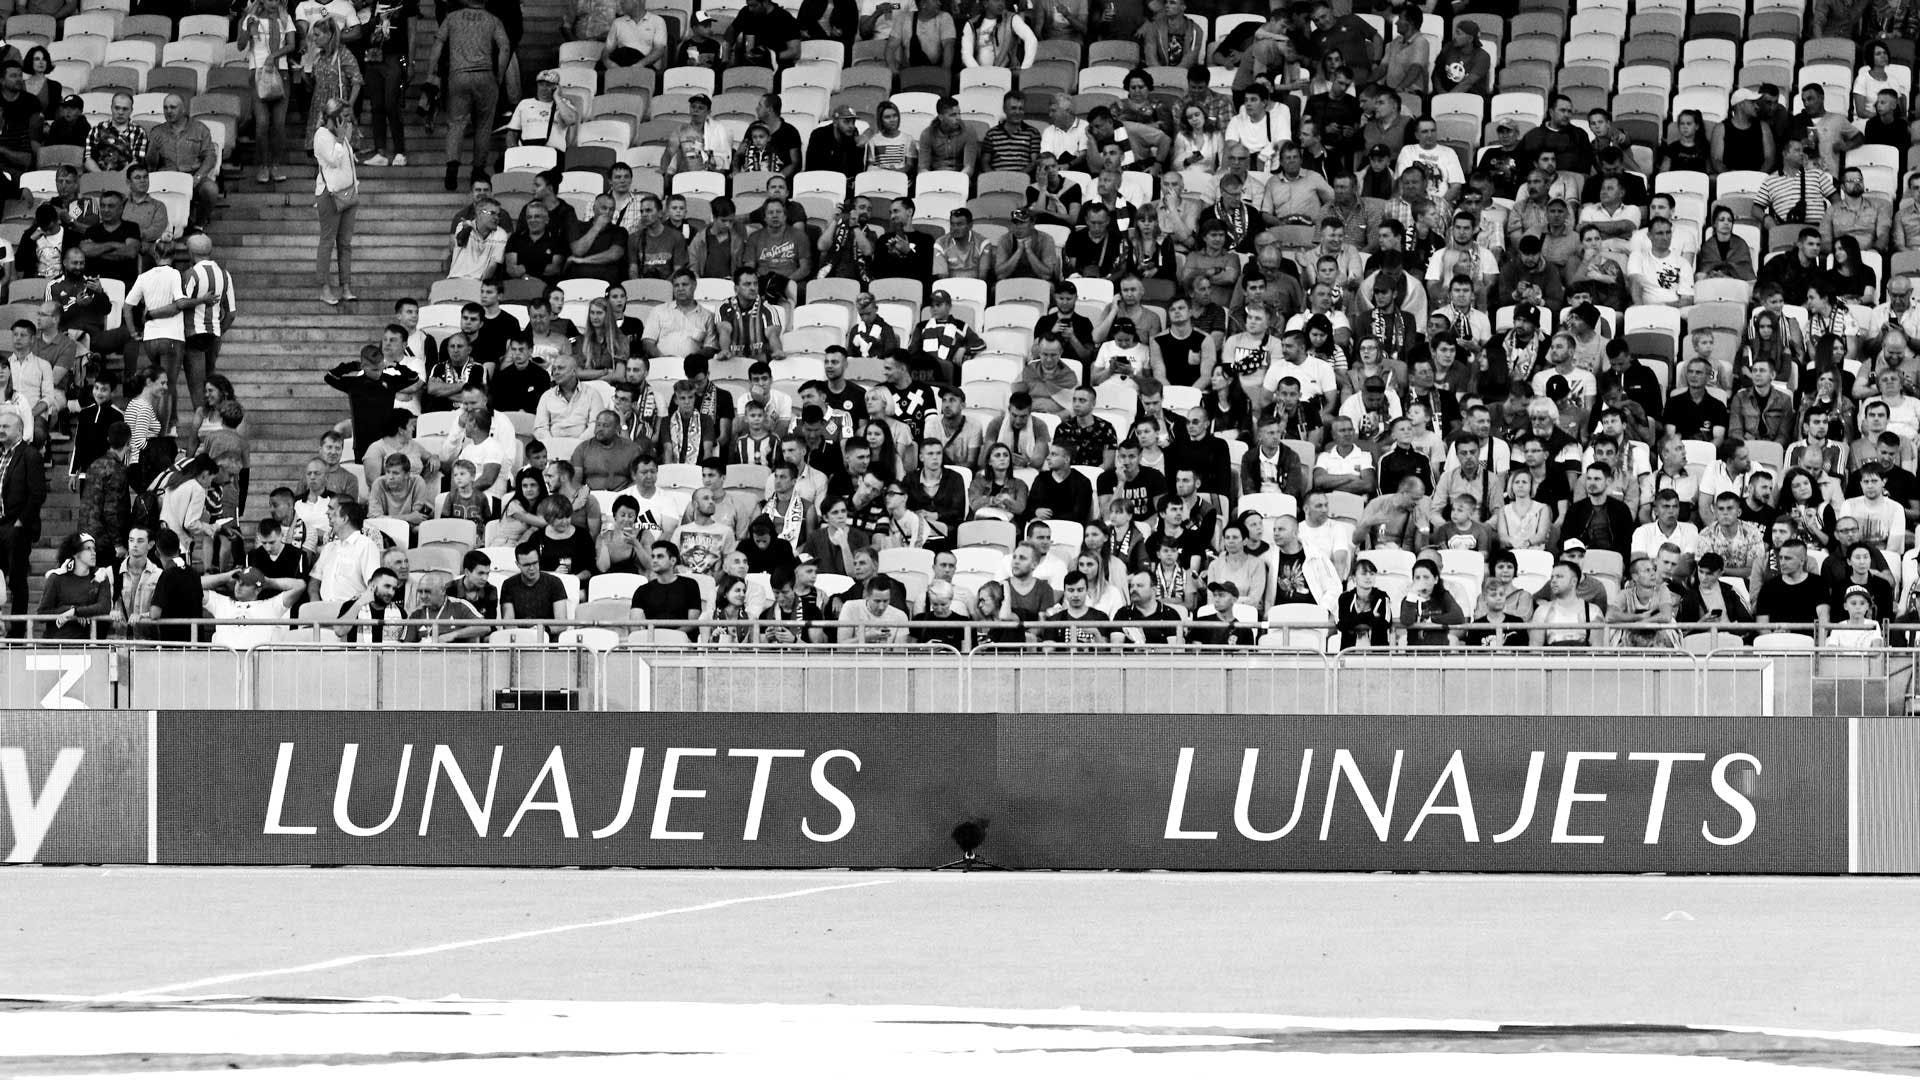 Banner from sponsors in a stadium.